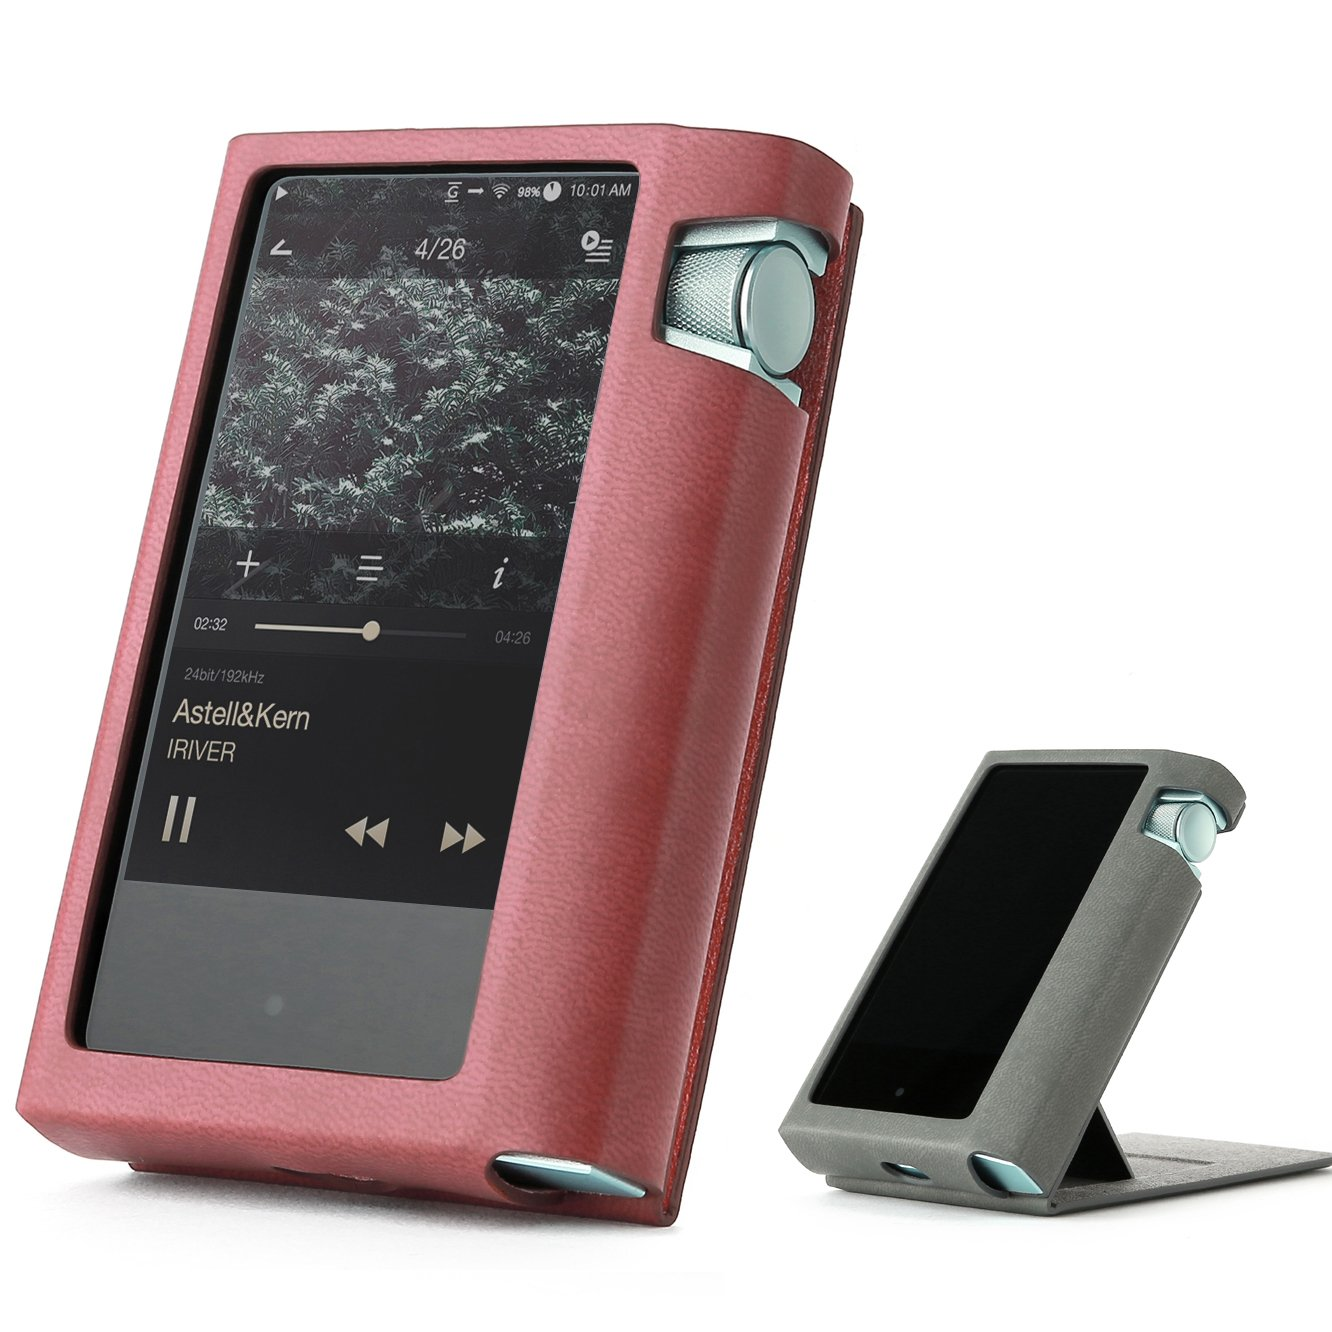 Astell&Kern AK70 AK 70 Hand Crafted Miter PU Leather Case Cover [Patented Stand Case] astell&Kern Leather case ak70 case (Redwine)